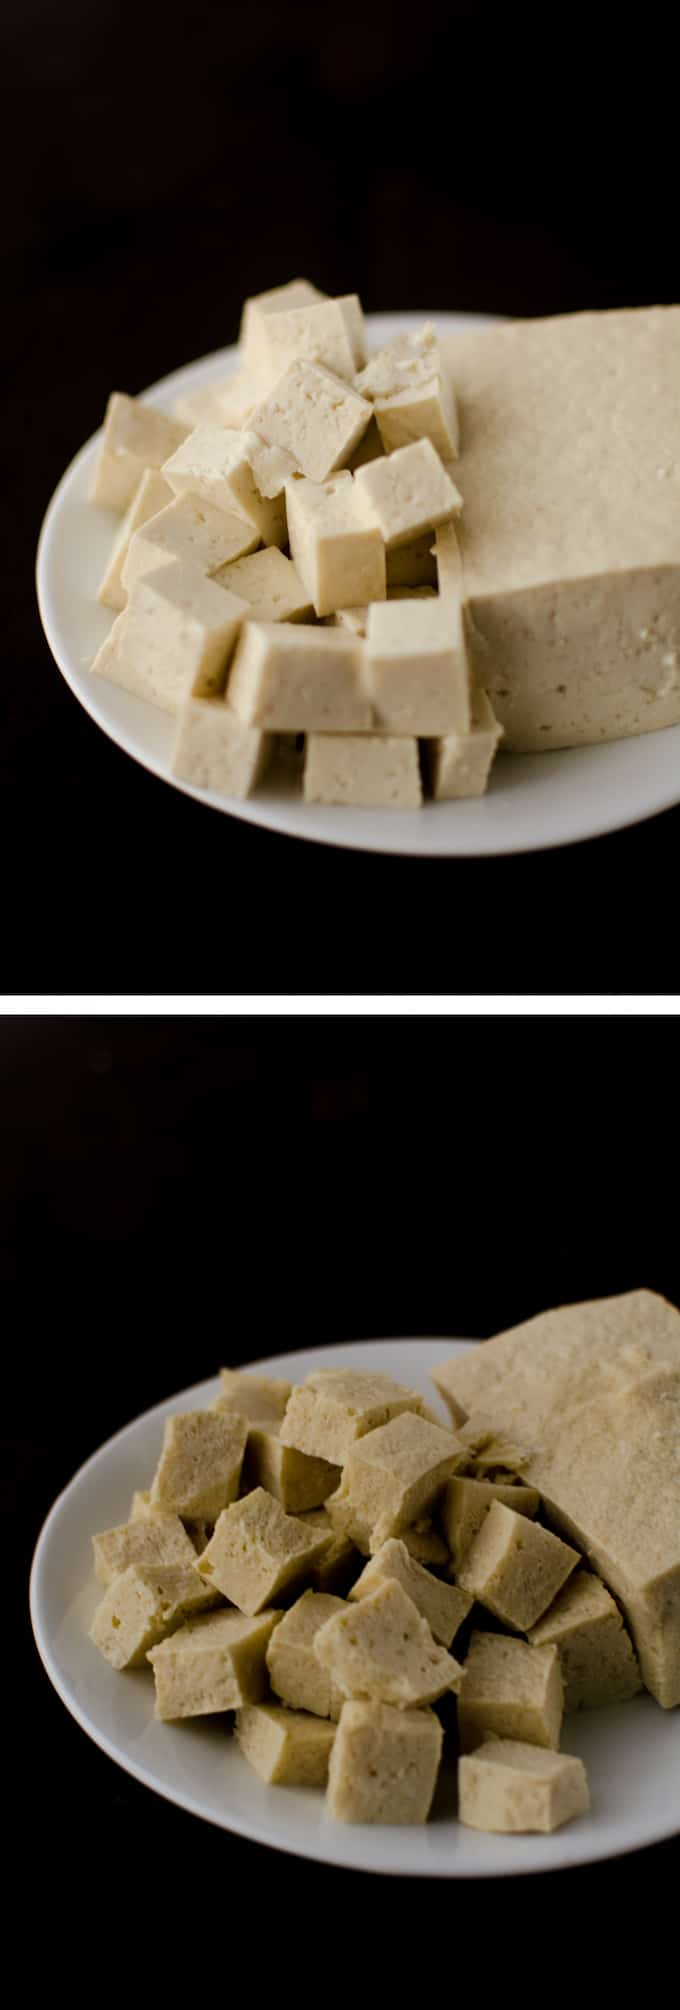 Side view of Regular Firm Tofu compared with Defrosted Firm Tofu to show texture. Stories from garlicdelight.com.